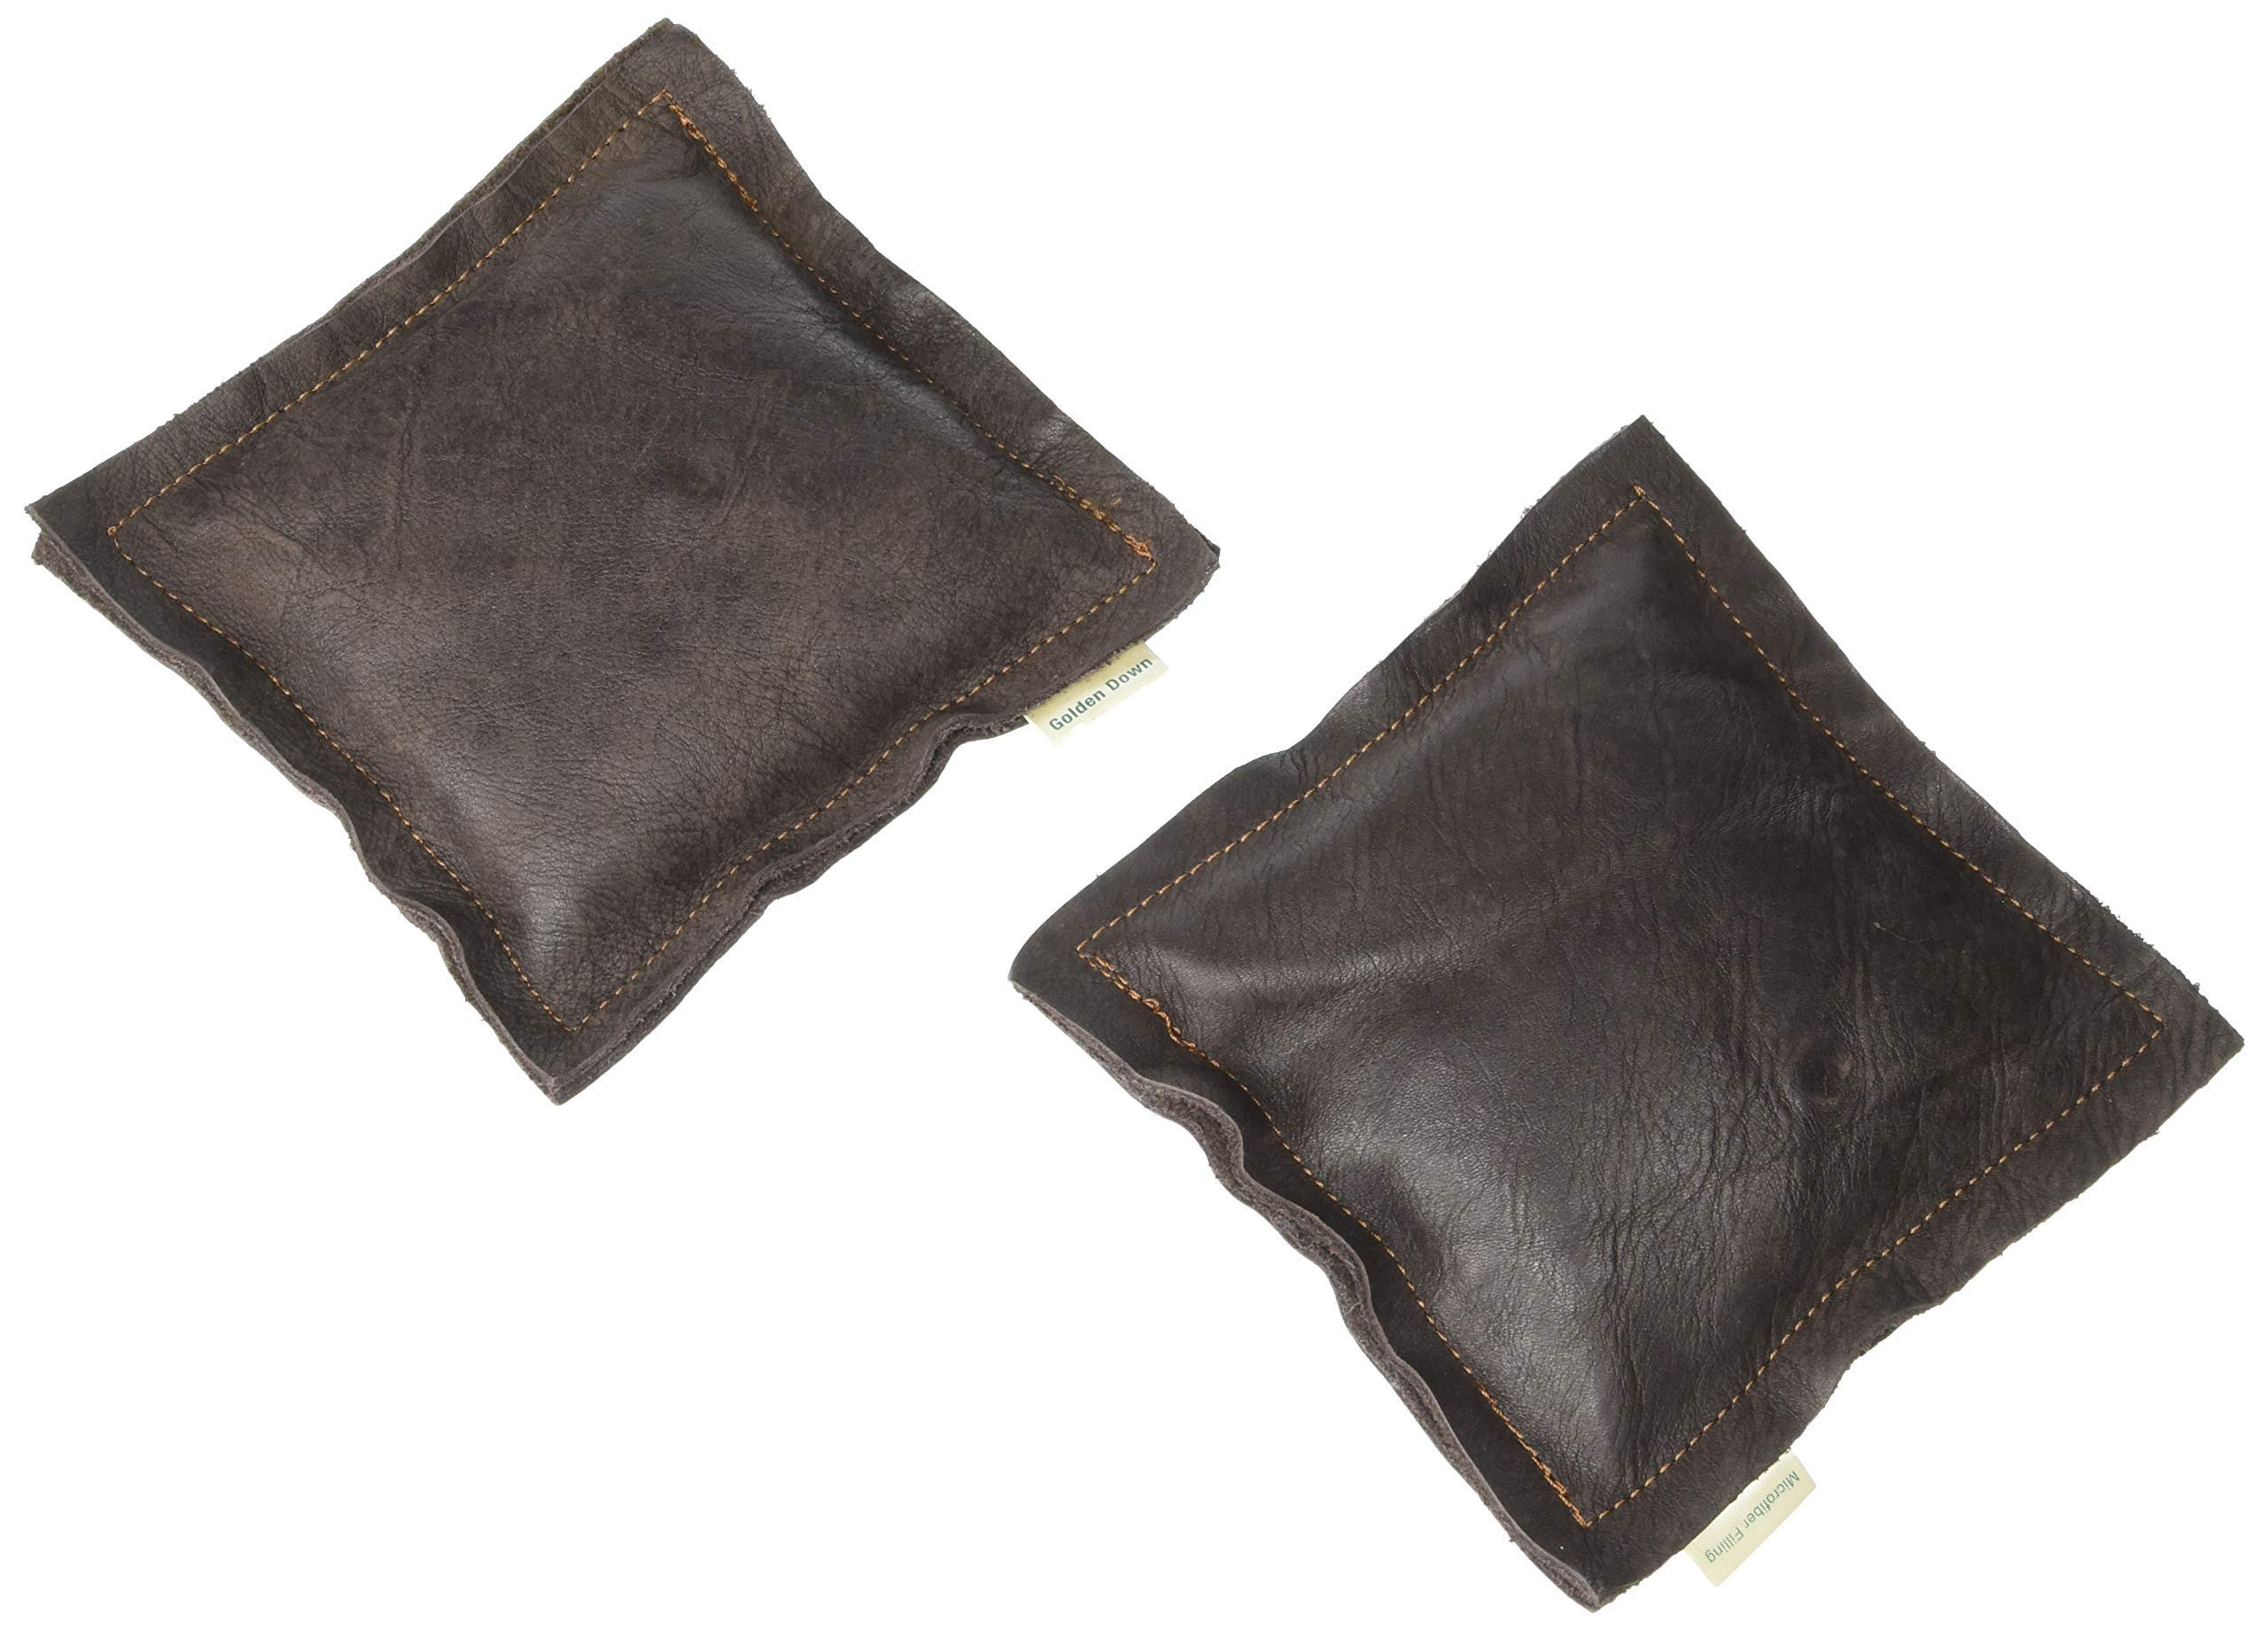 Golden Down A Pair of Elbow Leather Cushions, Premium Elbow Support Pads with Soft Microfiber, Crafted from Carefully Selected Excess New Genuine Leather, Random Color (6 x 6 Inch) by Golden Down (Image #1)